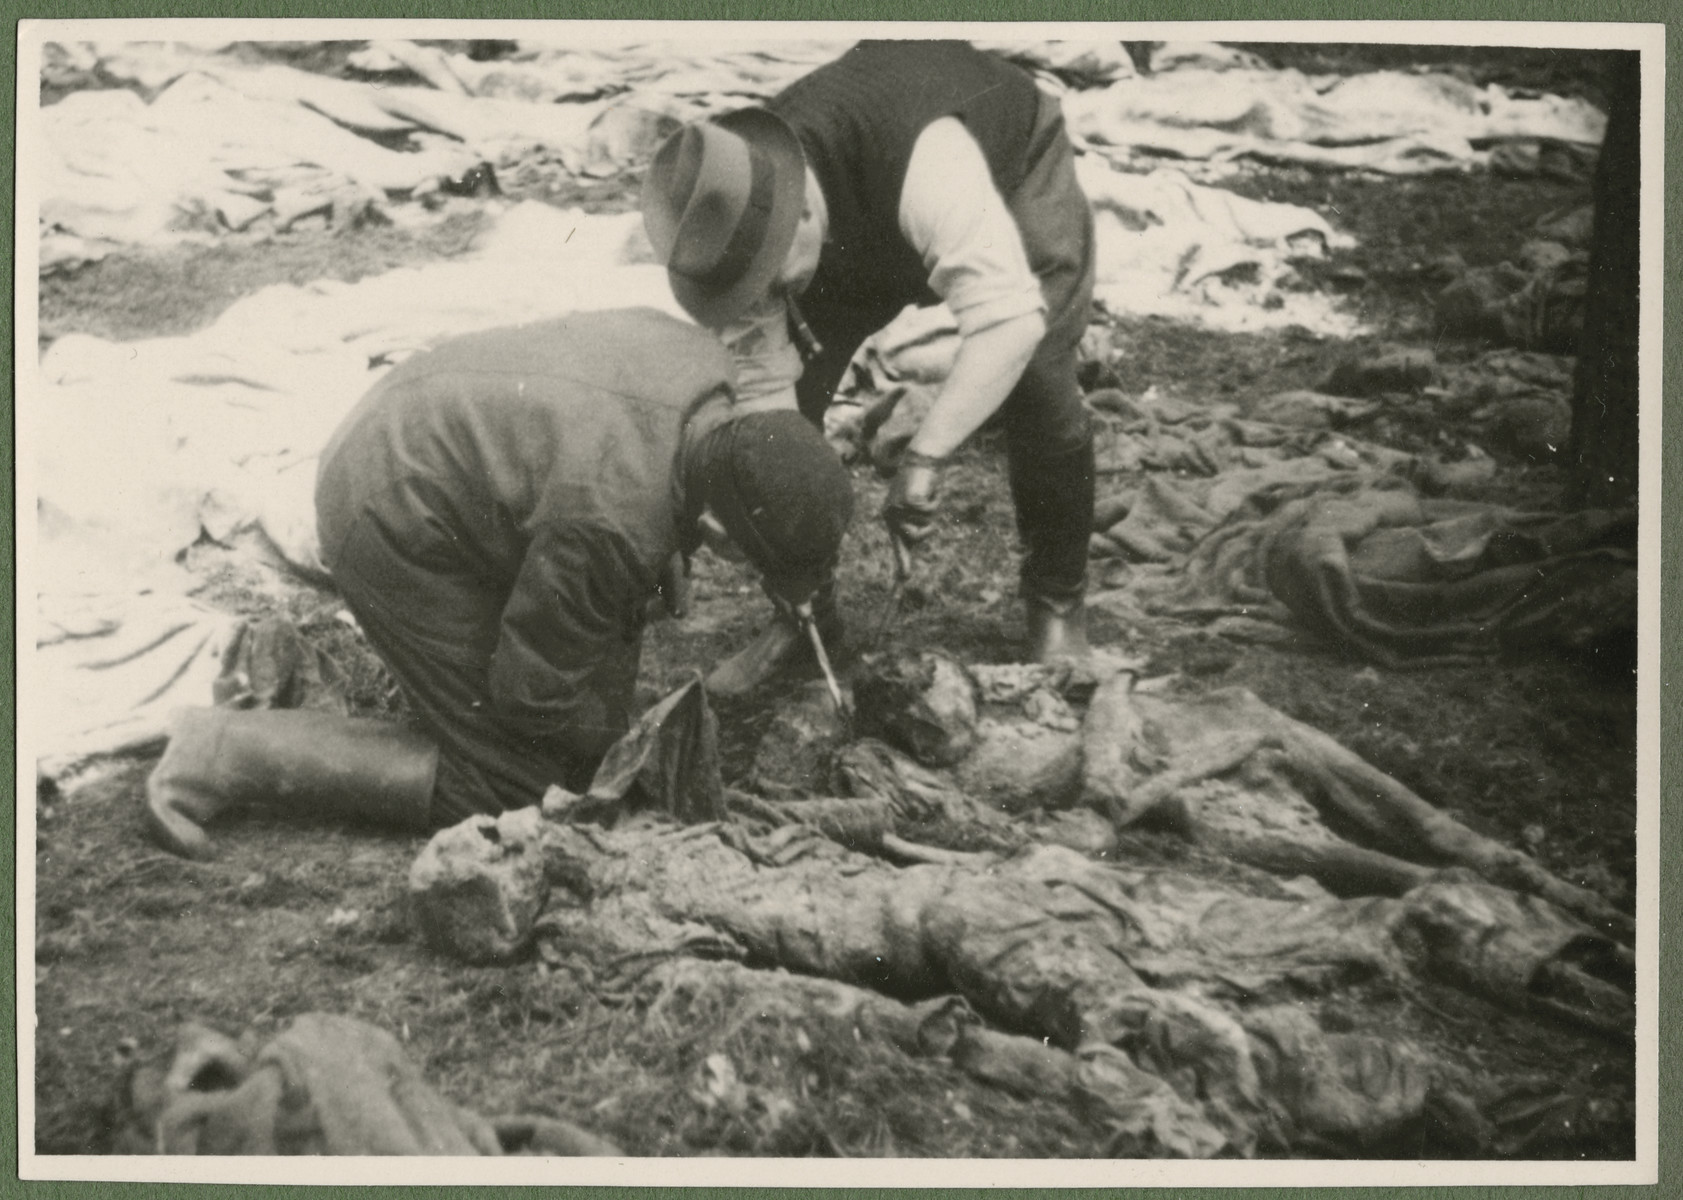 """Under the supervision of British troops, German civilians and Nazi officials exhume the corpses of 243 slave laborers for proper reburial.  The victims were shot by their guards on the railway lines at Lueneburg on the way to the Belsen Camp.    The original caption reads: The odor of the exhaust from the truck seems mild by comparison."""""""